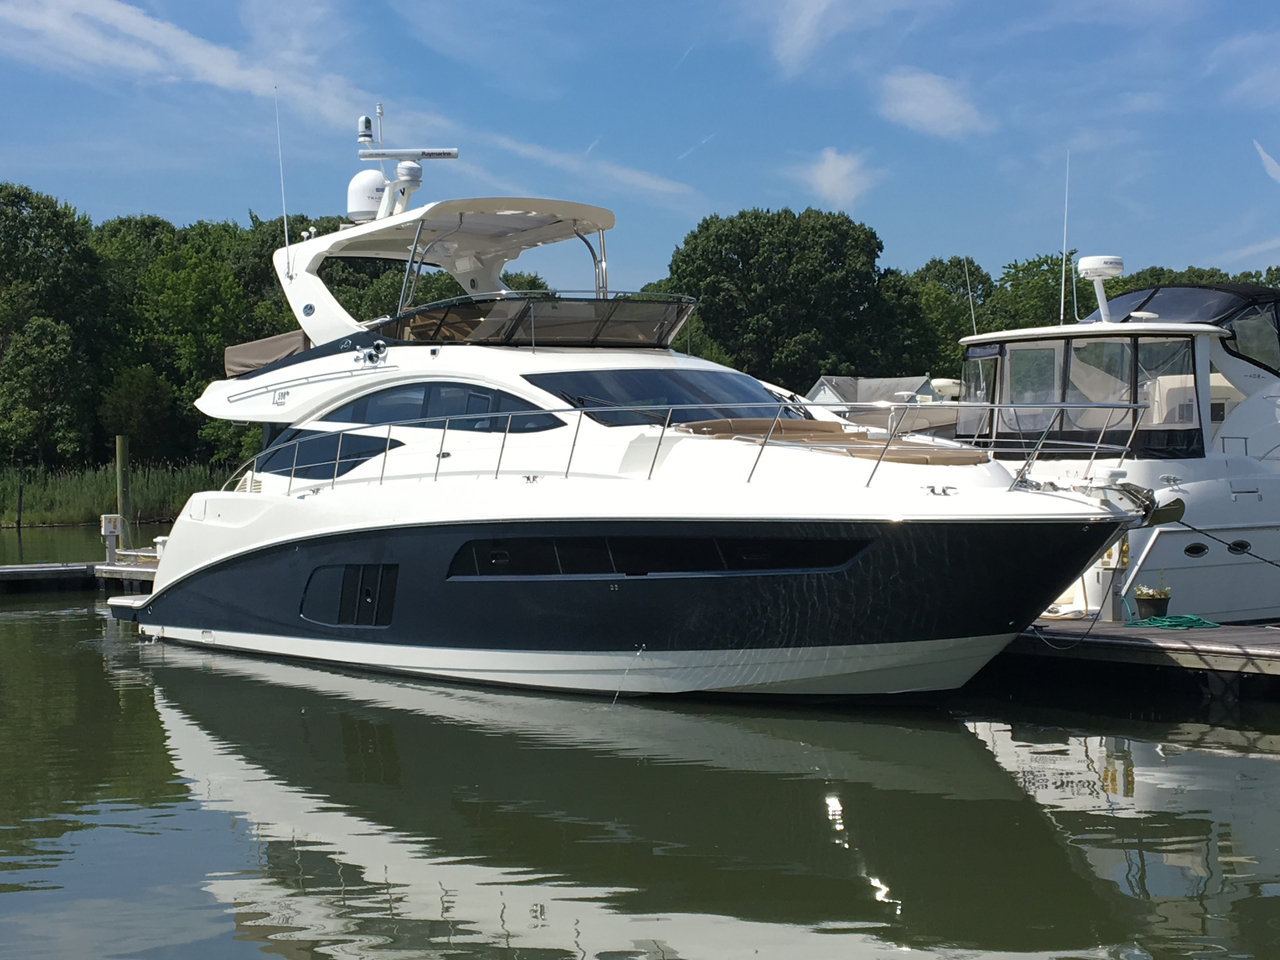 2017 new sea ray l590 fly motor yacht for sale chester for Sea ray motor yacht for sale